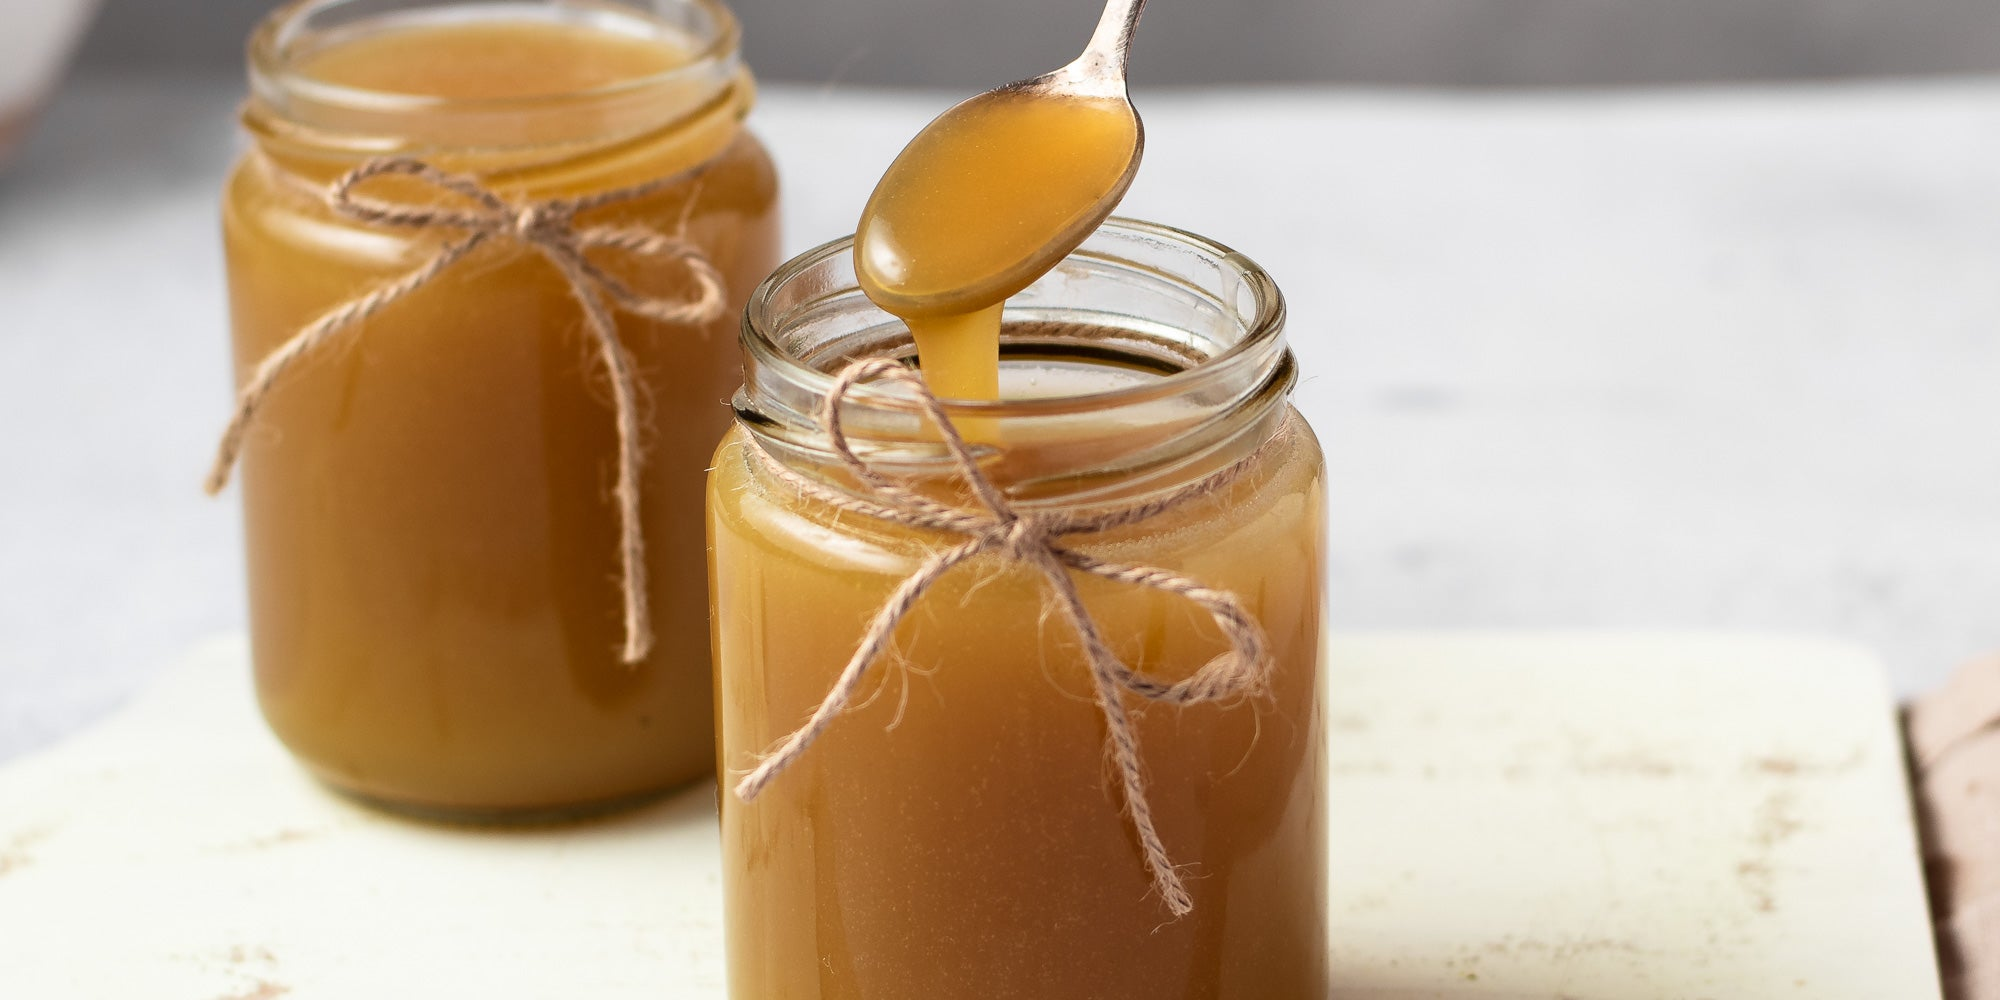 Toffee Sauce poured into a jar